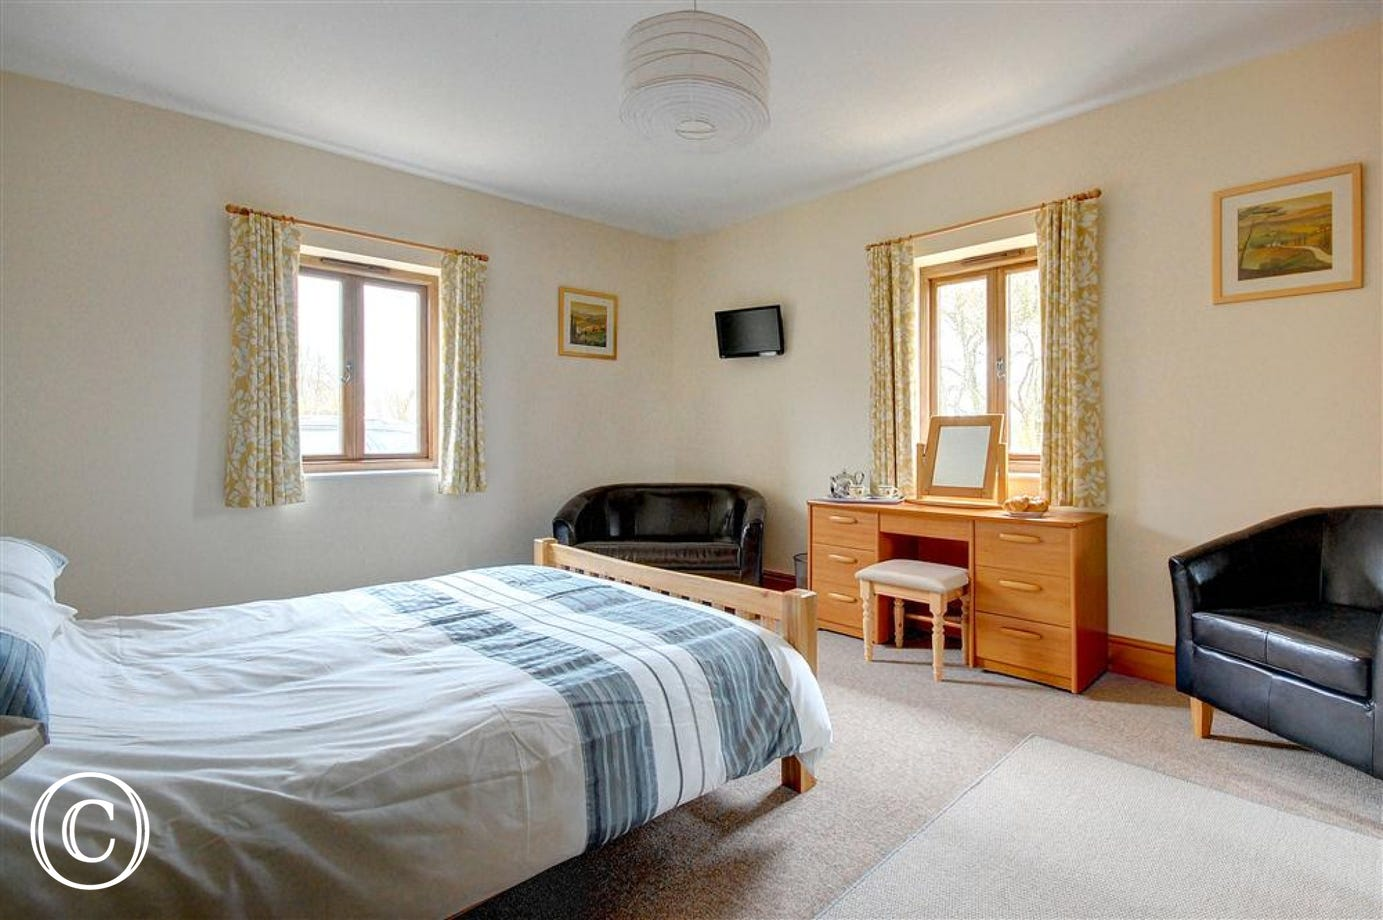 This bright double bedded room has all the luxuries one might expect with generous wardrobe dressing table television and tub sofa.